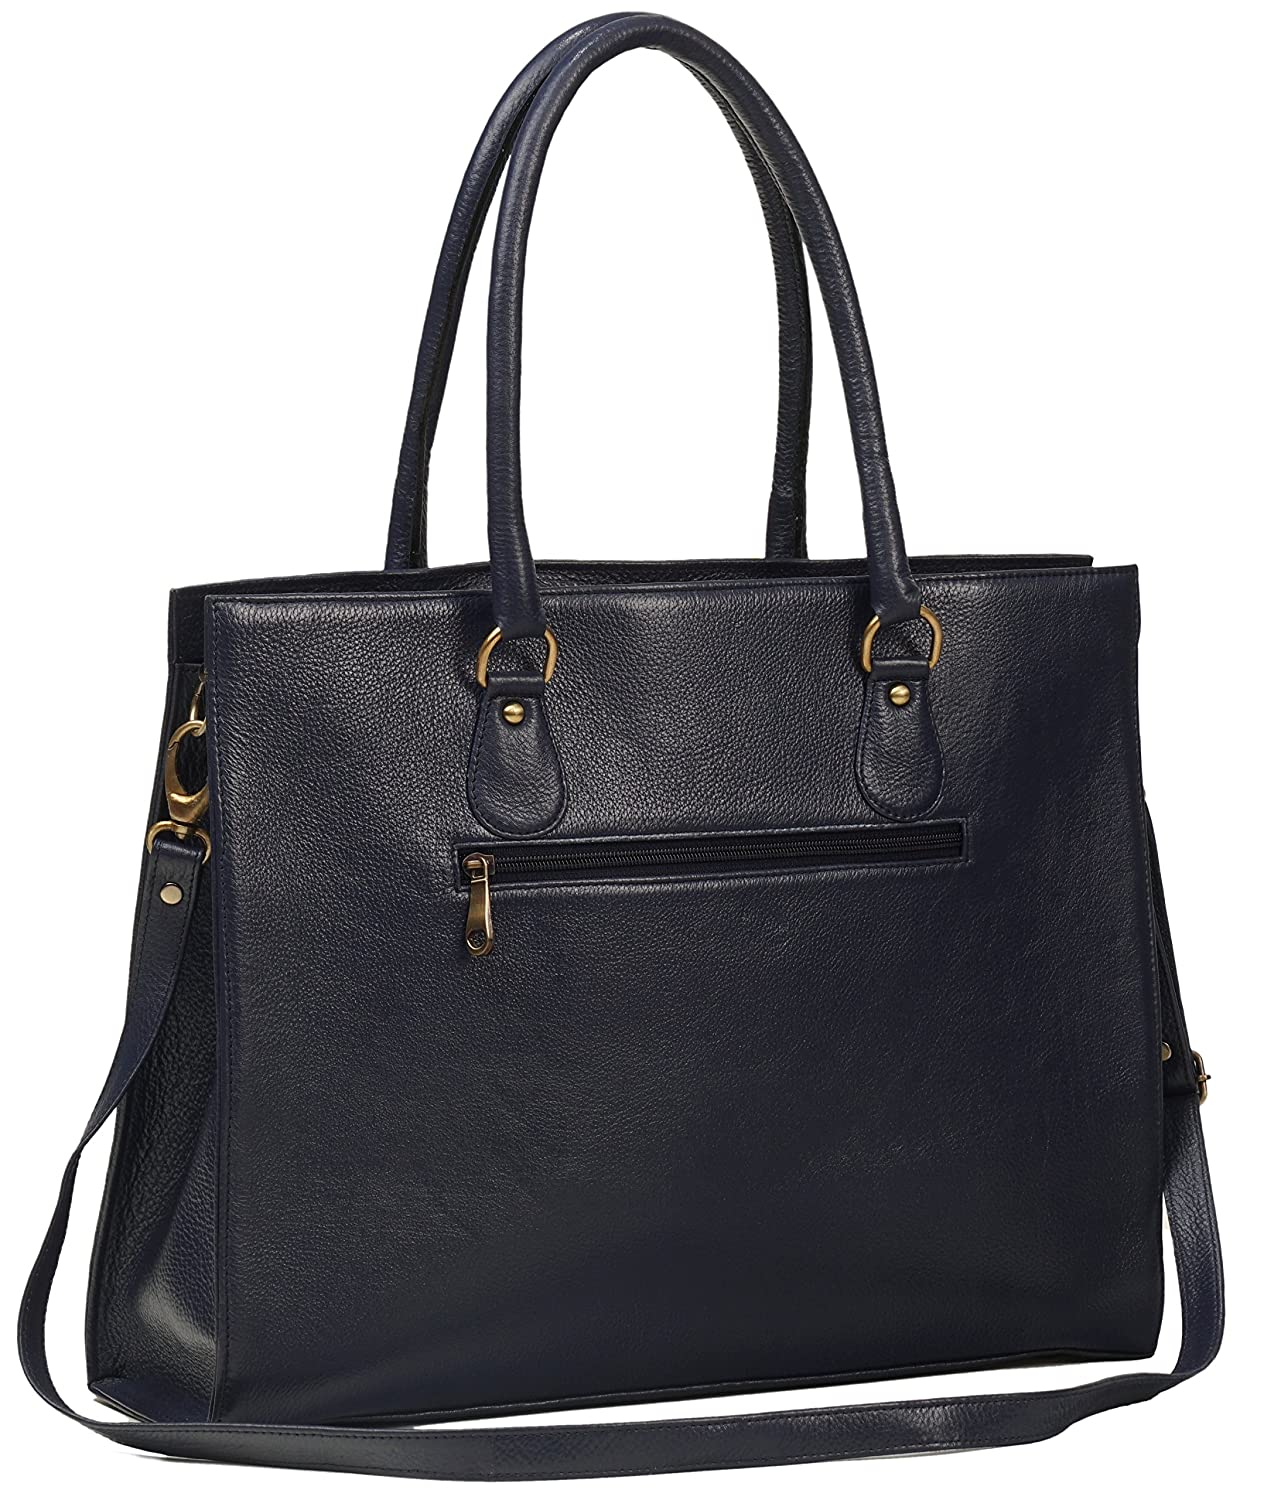 31b2b451ea durable modeling ZipperNext Genuine Leather Tote handbag Shoulder Bag  Women s Leather Laptop Bag with compartment for